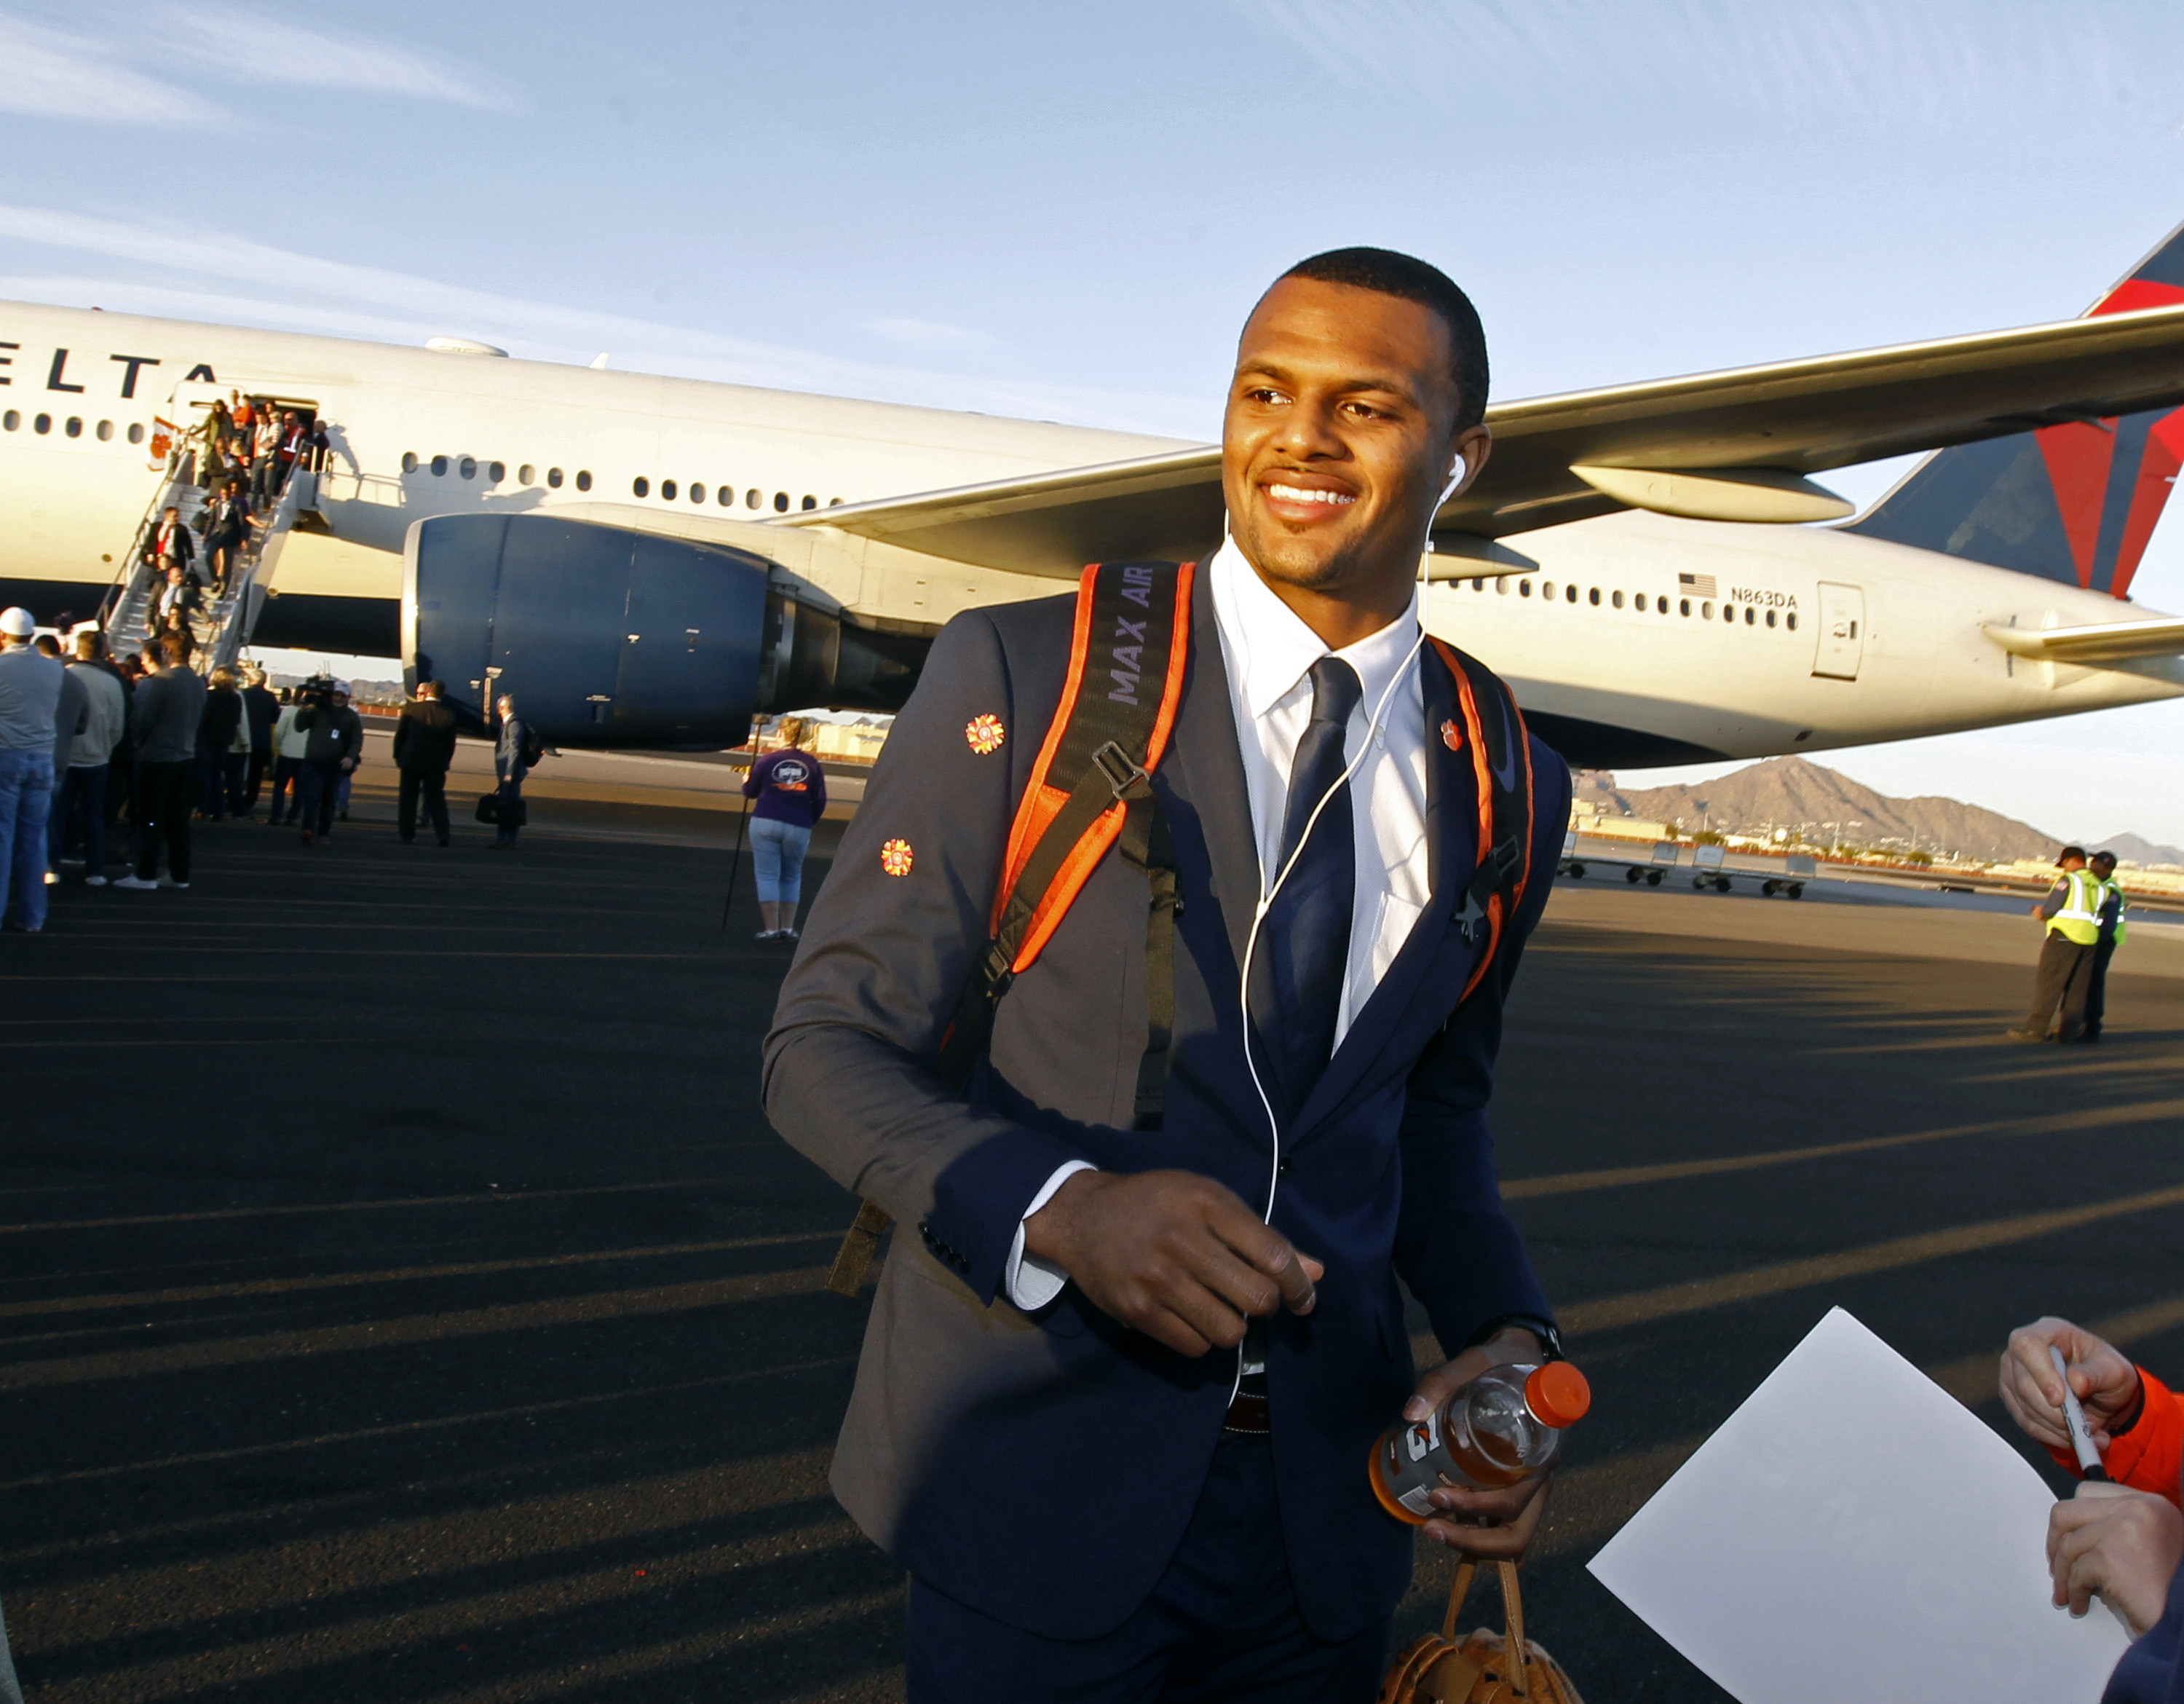 Clemson quarterback Deshaun Watson walks across the tarmac after arriving with his team at Phoenix Sky Harbor Airport on Monday, Dec. 26, 2016, in Phoenix. Clemson will play Ohio State in the Fiesta Bowl as part of the college football playoff semifinal o